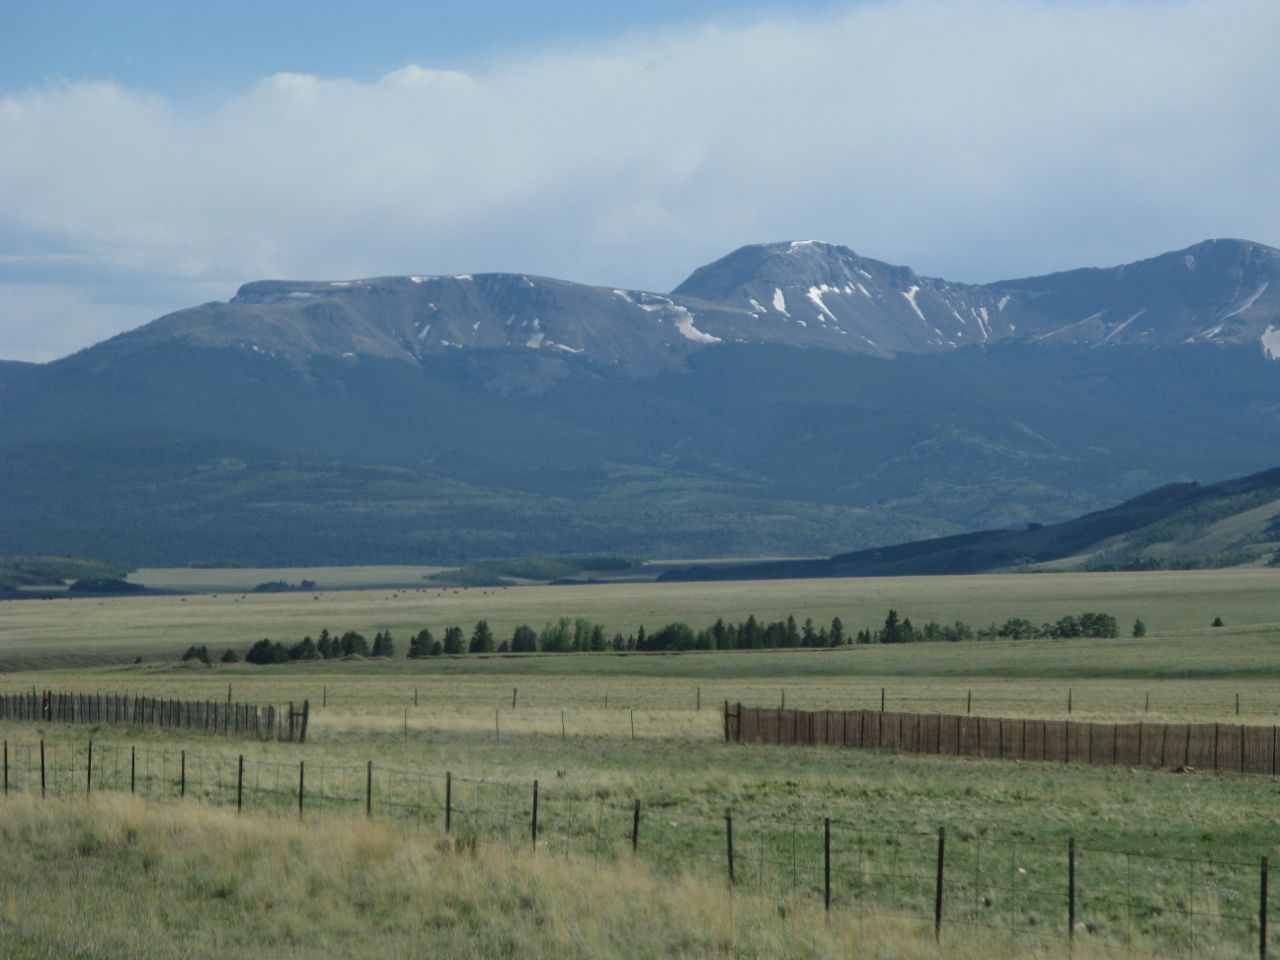 Buffalo Peaks through the car windshield, on the approach to Trout Creek Pass, the first mountain pass on my commute to Denver.